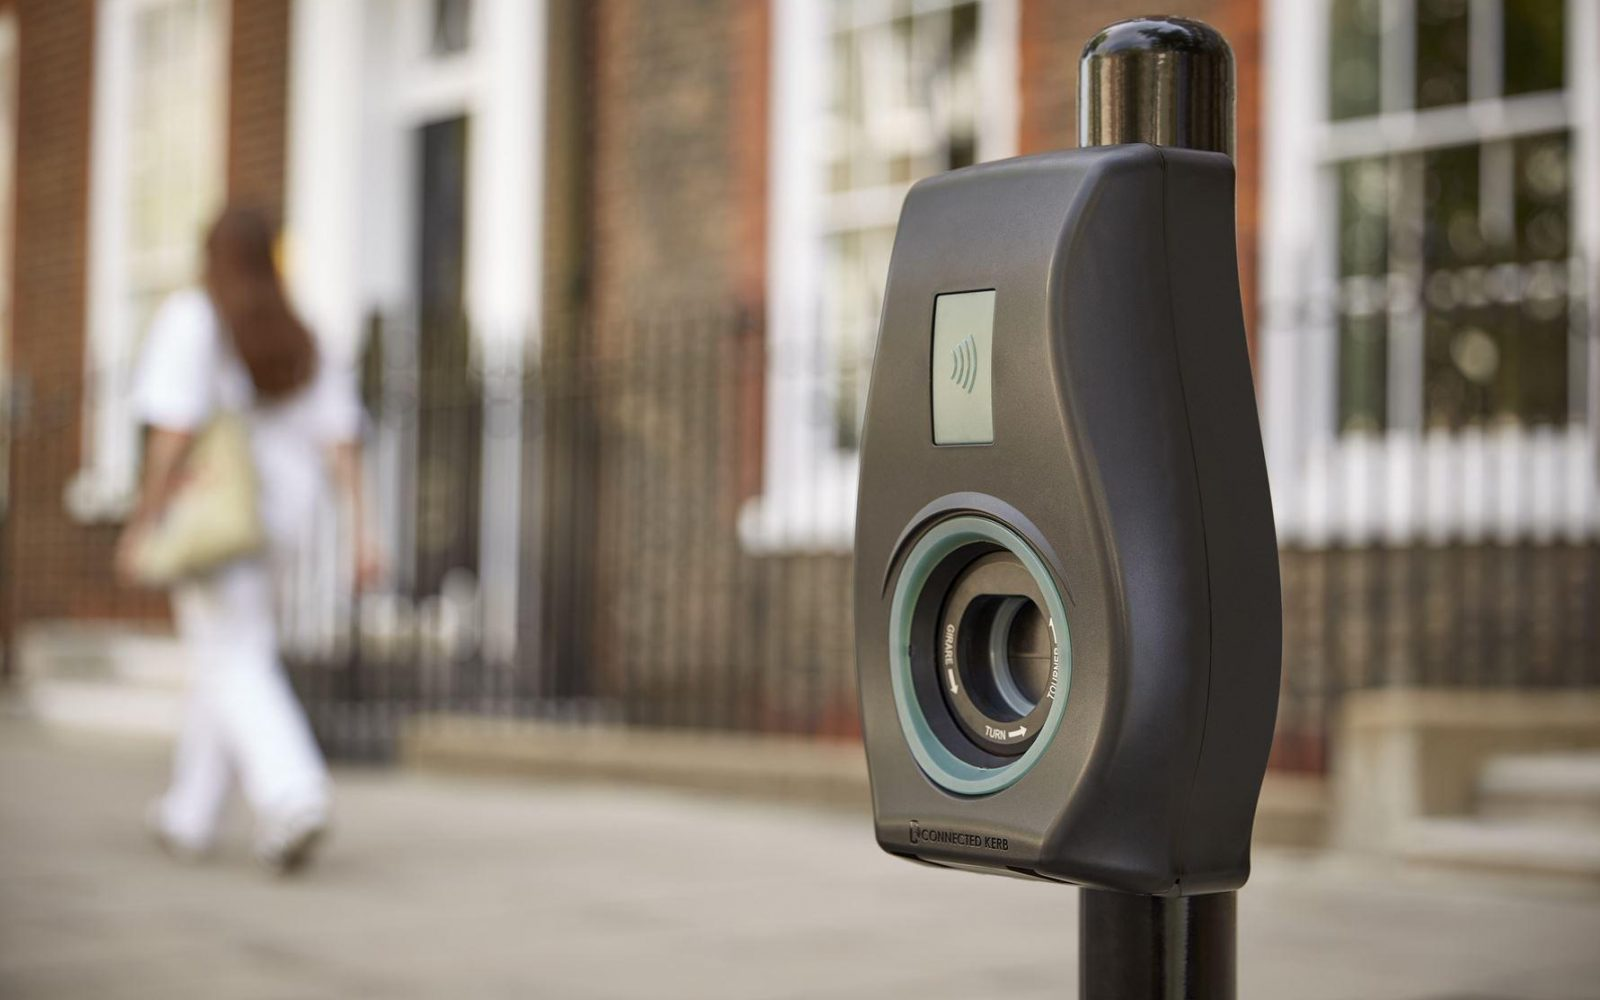 The report also looked at public charging, highlighting concerns over pricing discrepancies between charging at home vs using a public charger. Image: Connected Kerb